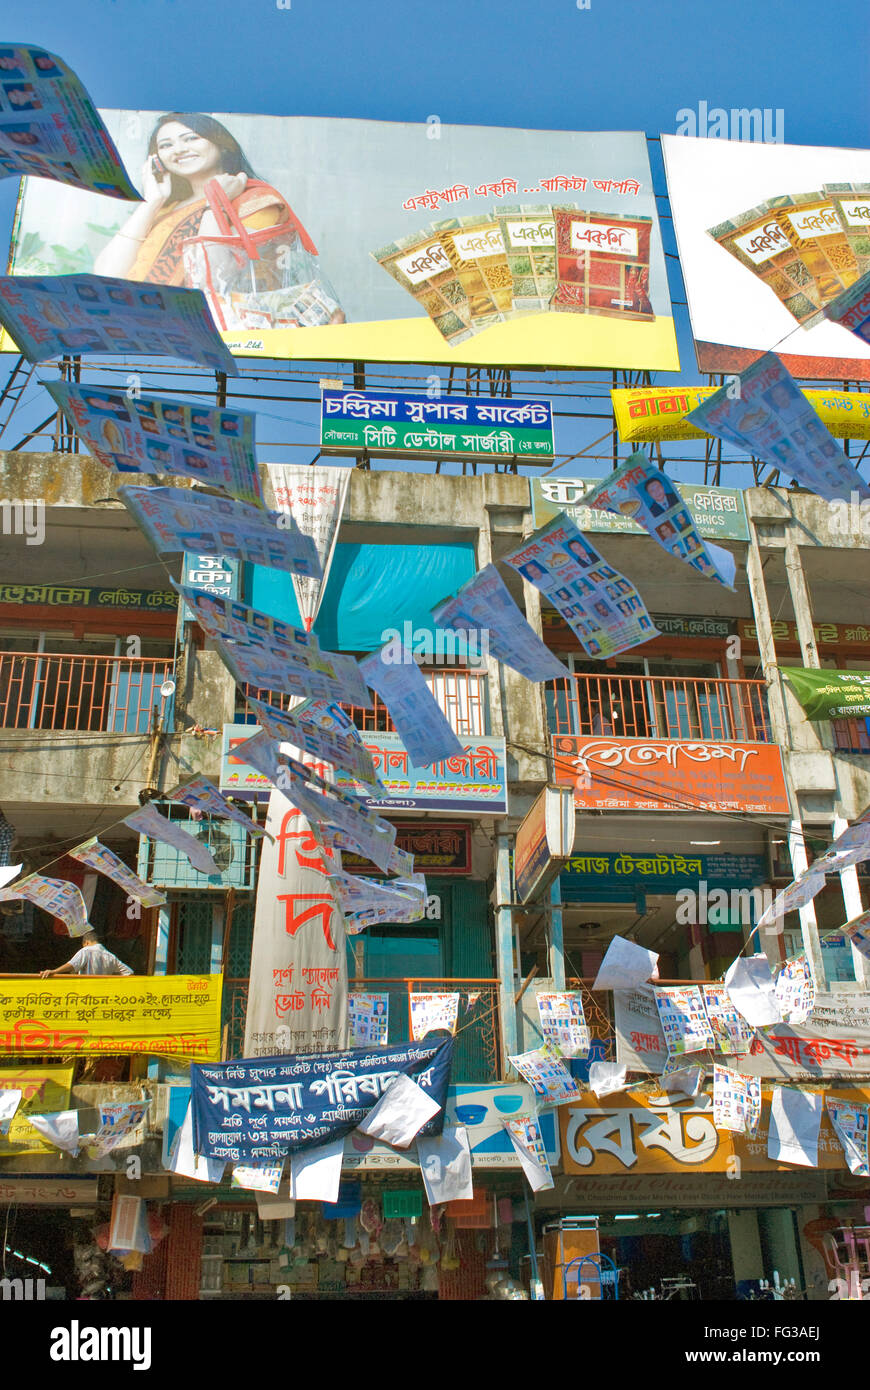 Advertising hoardings and banners and pamphlets hanging around in New Market ; Dhaka ; Bangladesh - Stock Image